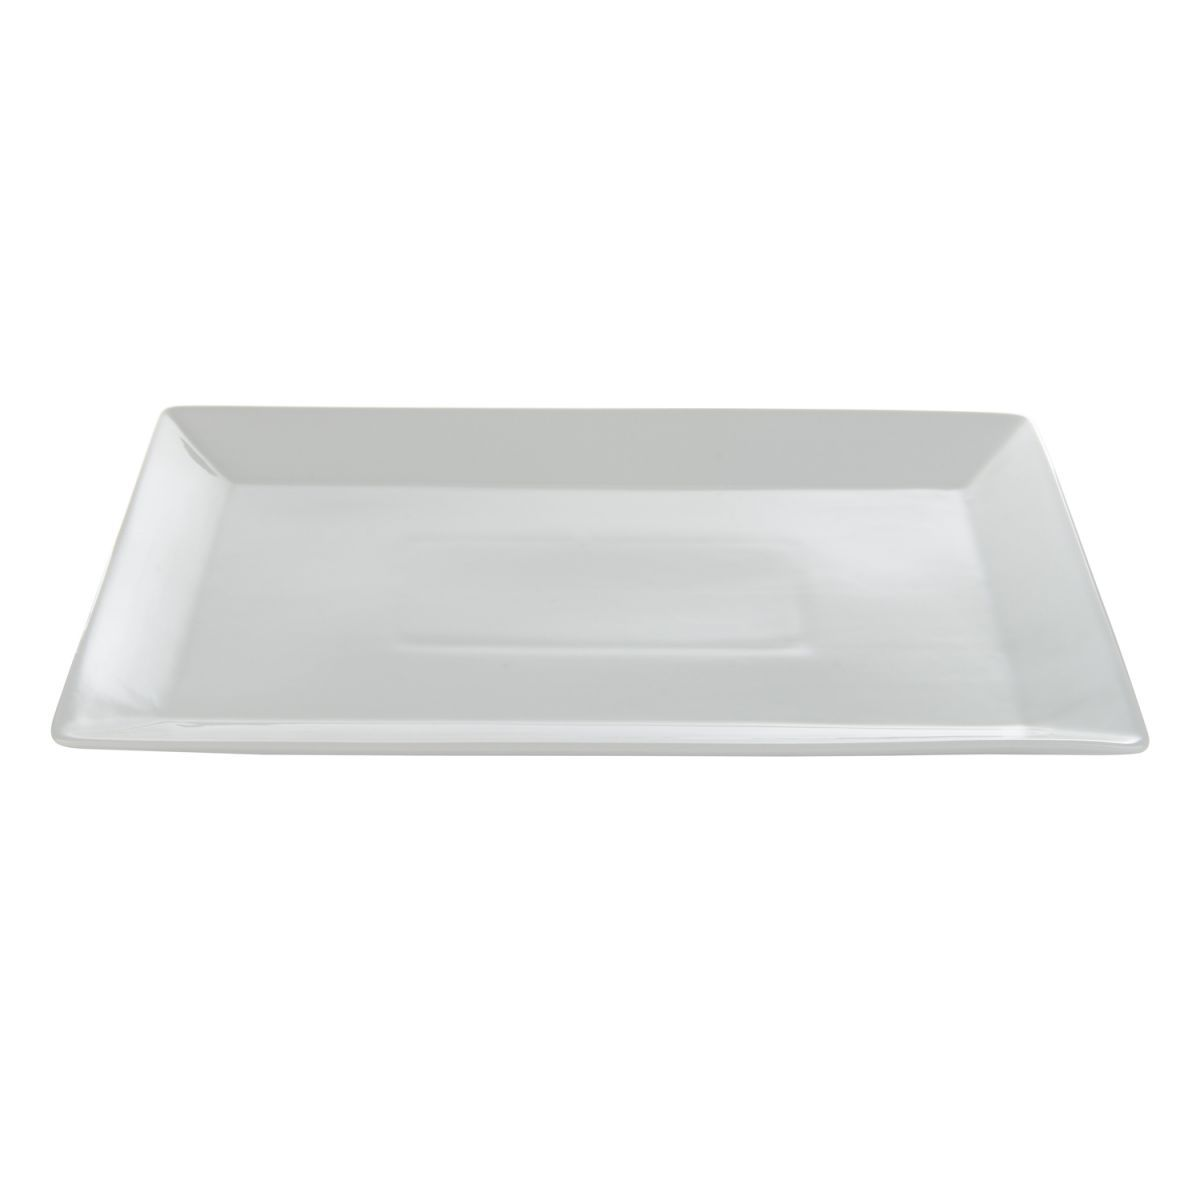 plate rectangular 39 x 25 cm box4